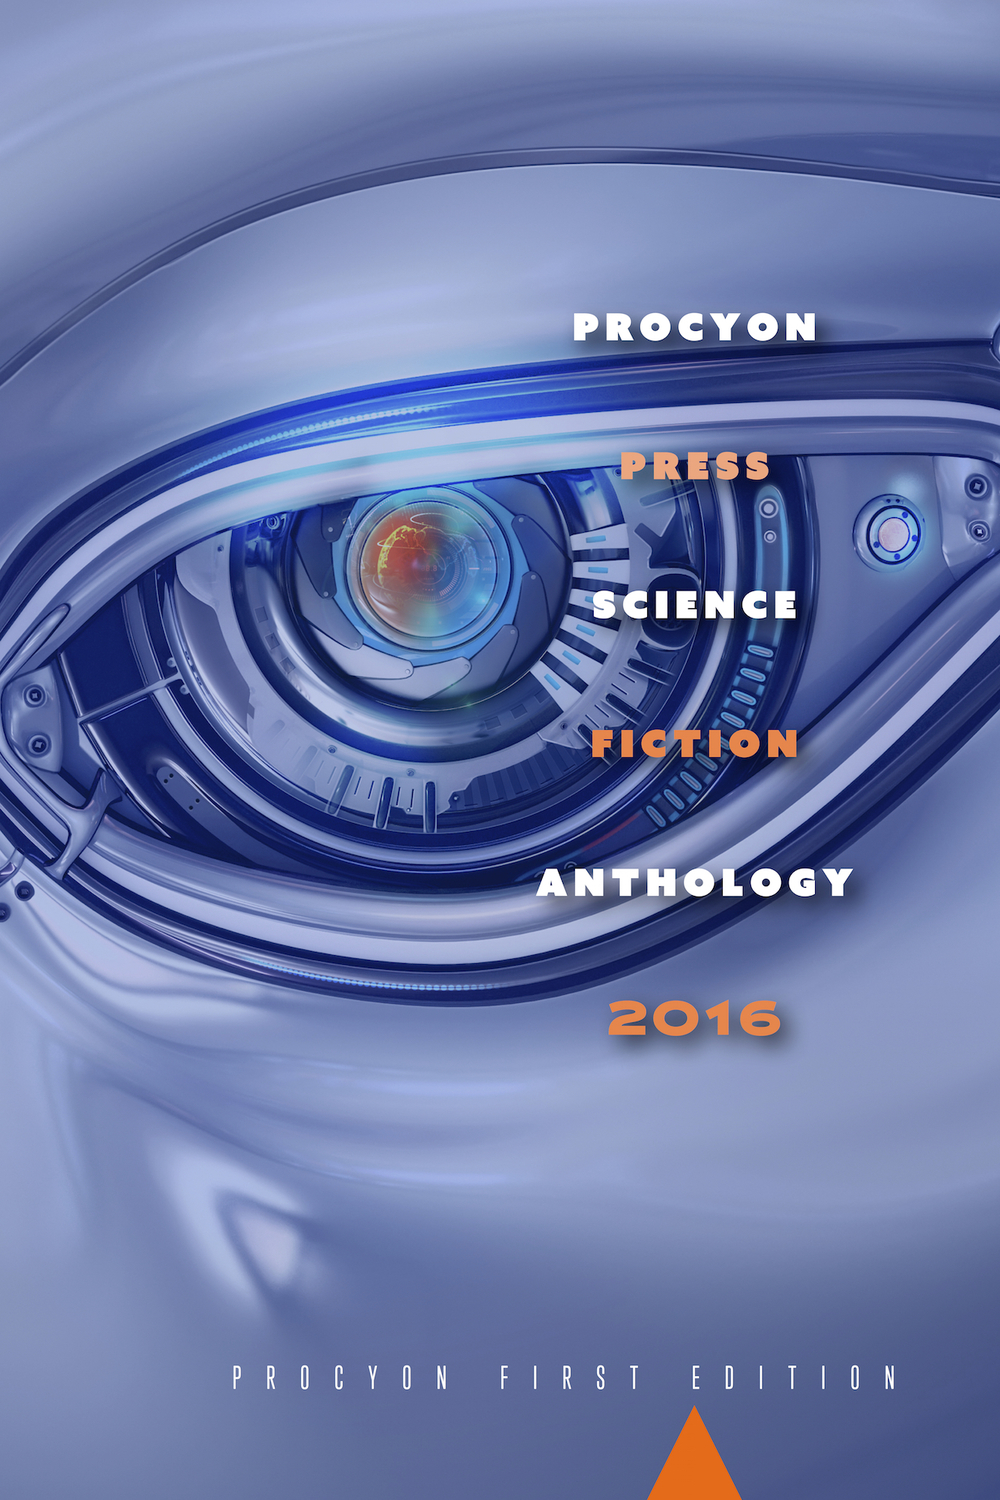 1 - Procyon Press Sci-Fi Anthology - FrontCover - Final.jpg